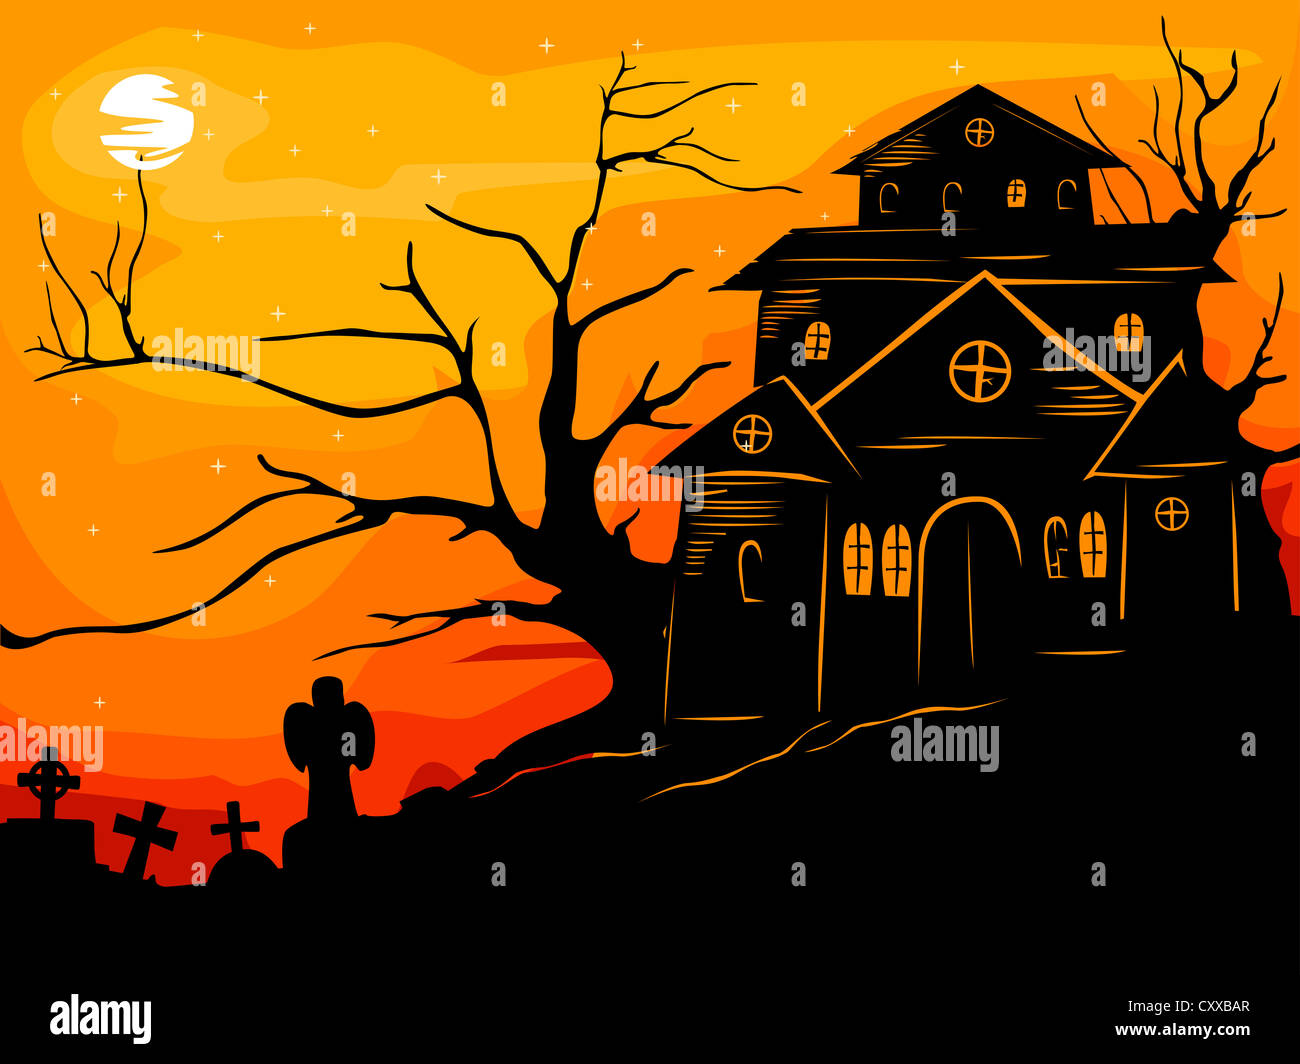 Halloween Illustration Featuring The Silhouette Of A Haunted House Framed By Reddish Orange Sunset